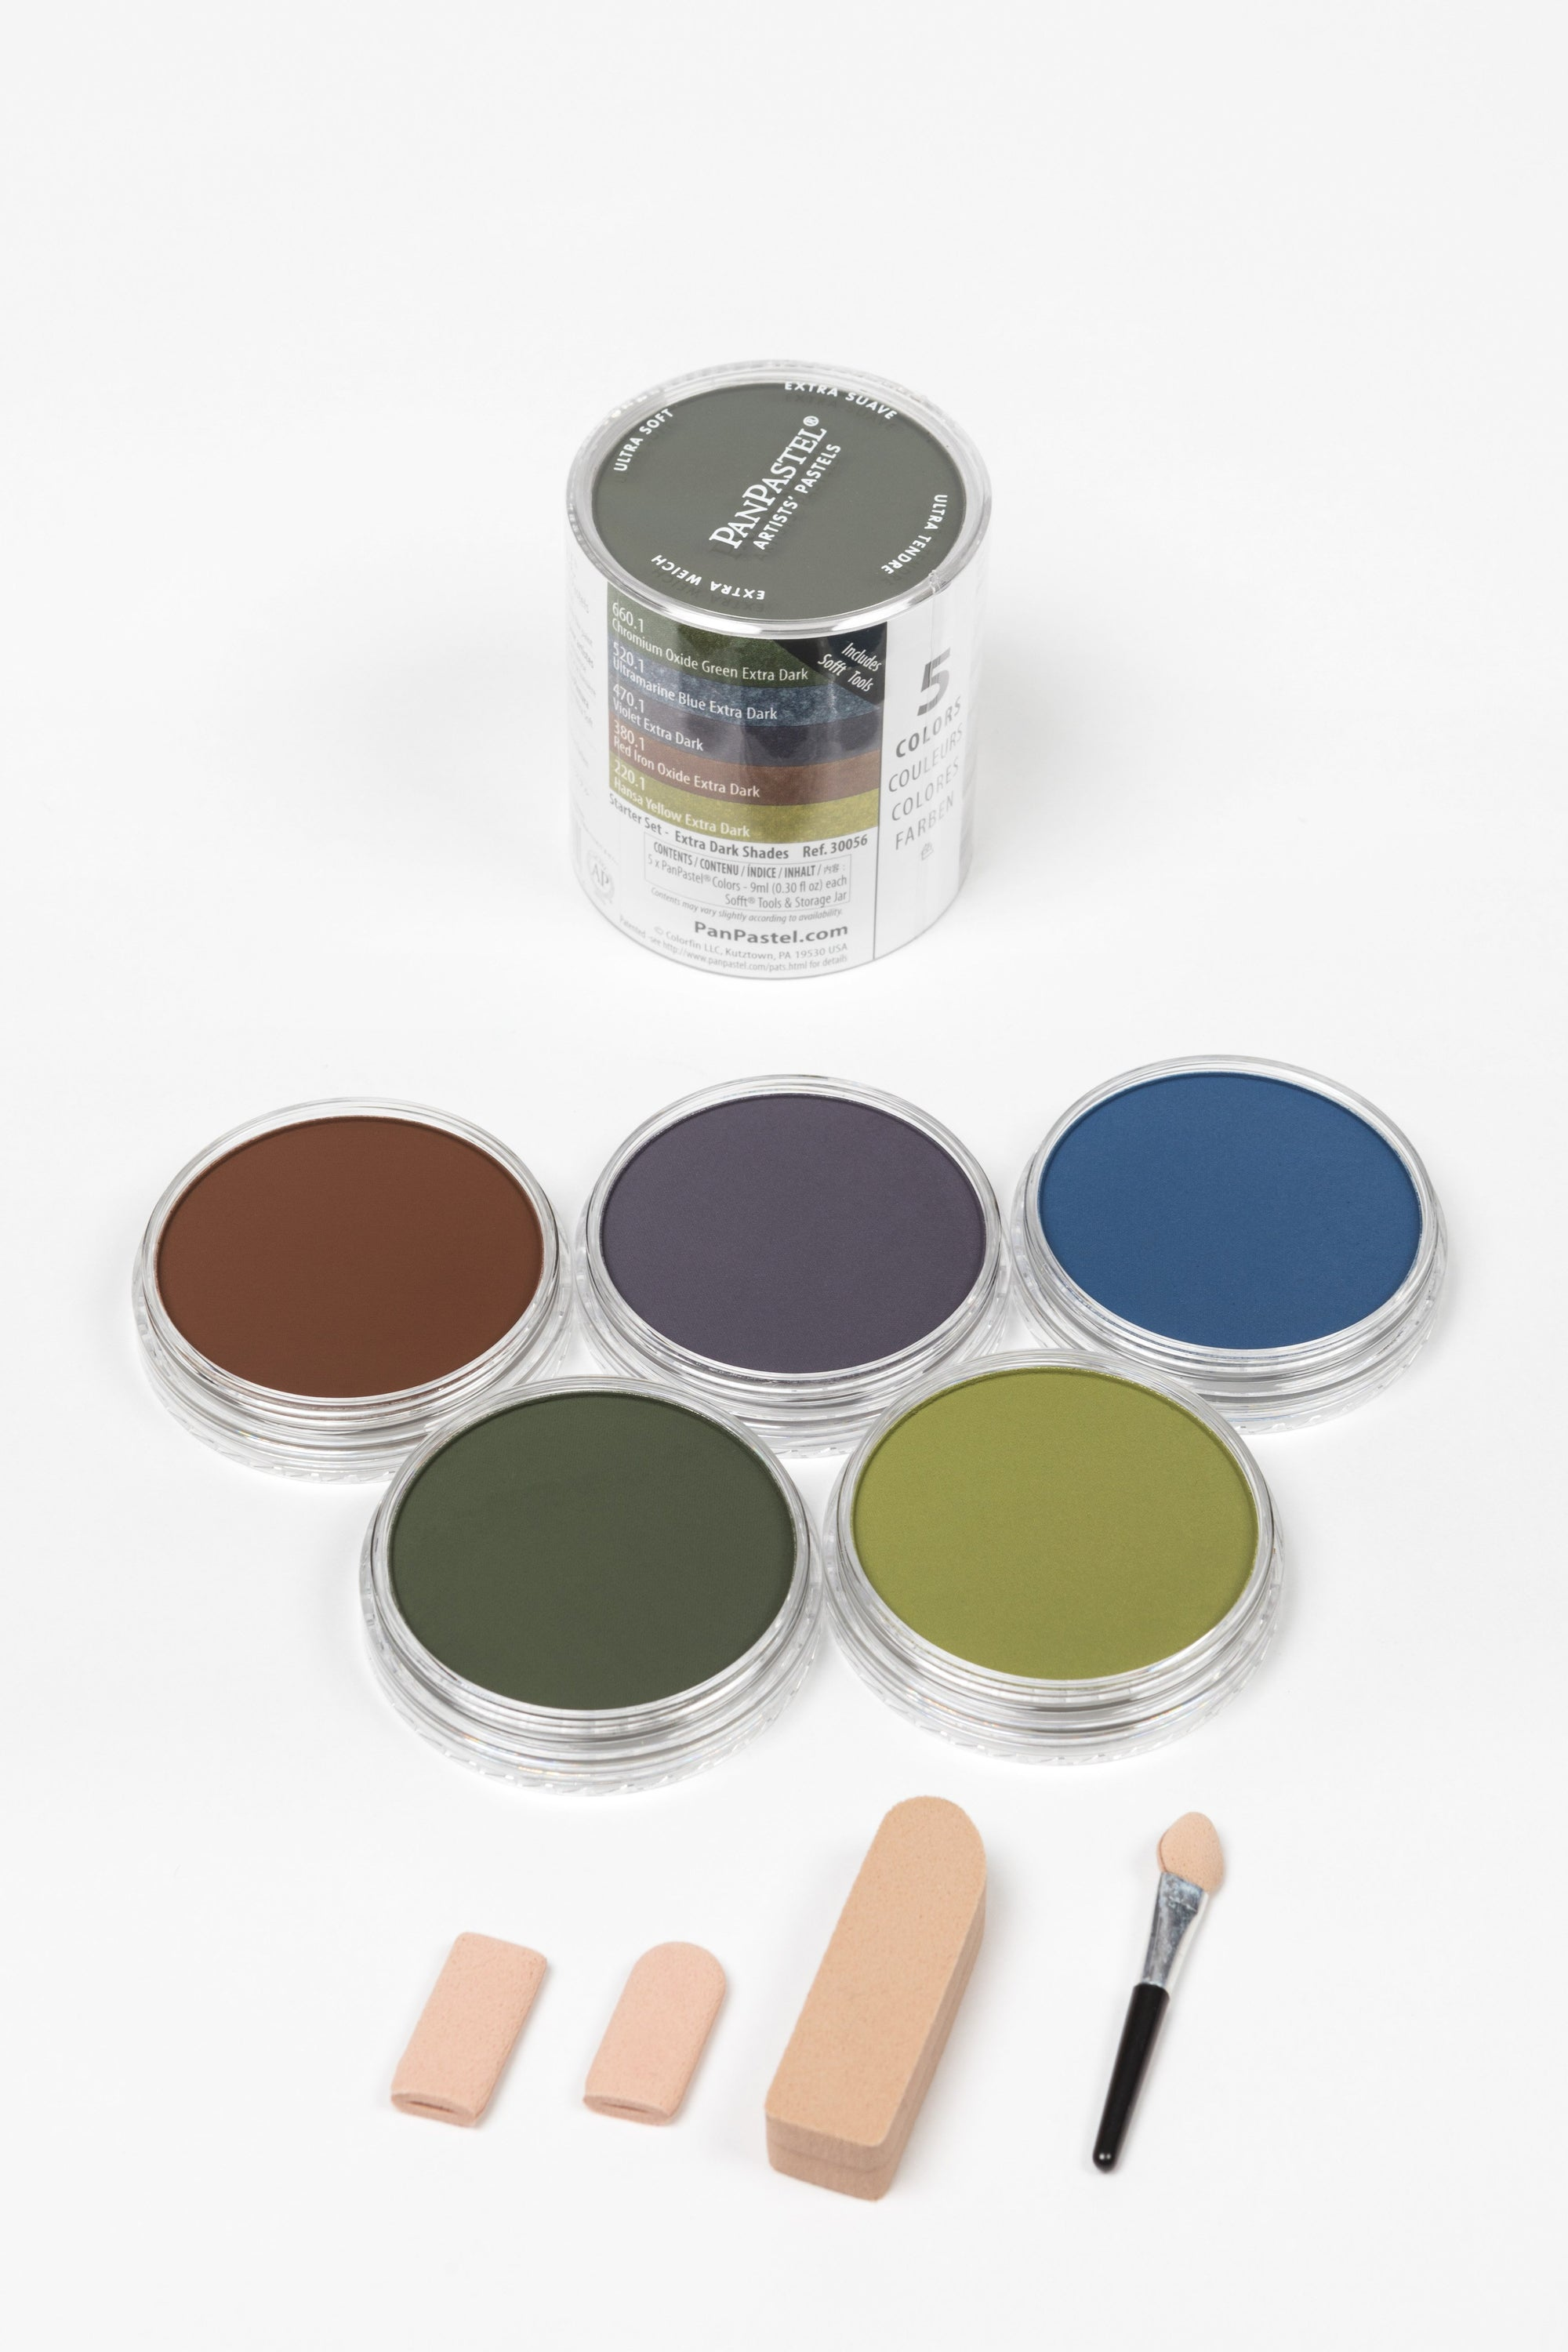 PanPastel - 30056 5 COLOUR EXTRA DARK SHADES STARTER SET